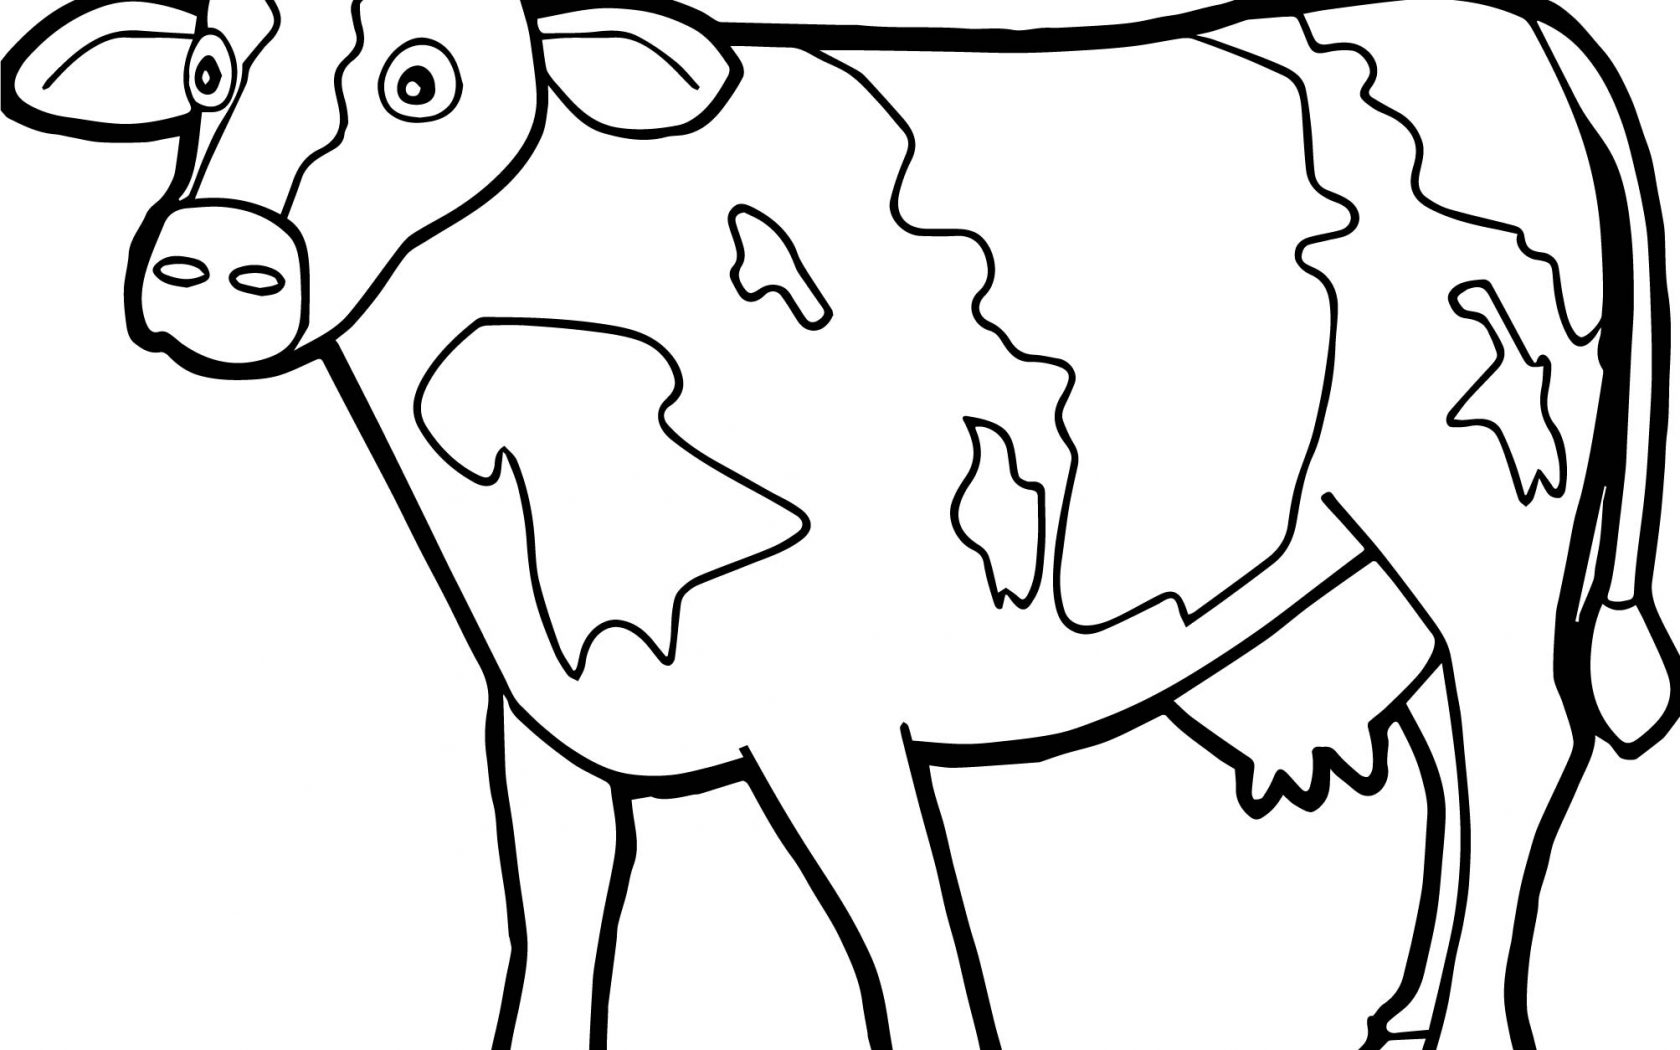 1680x1050 Printable Cattle Or Cow Coloring Pages Best Of Creativemove Is